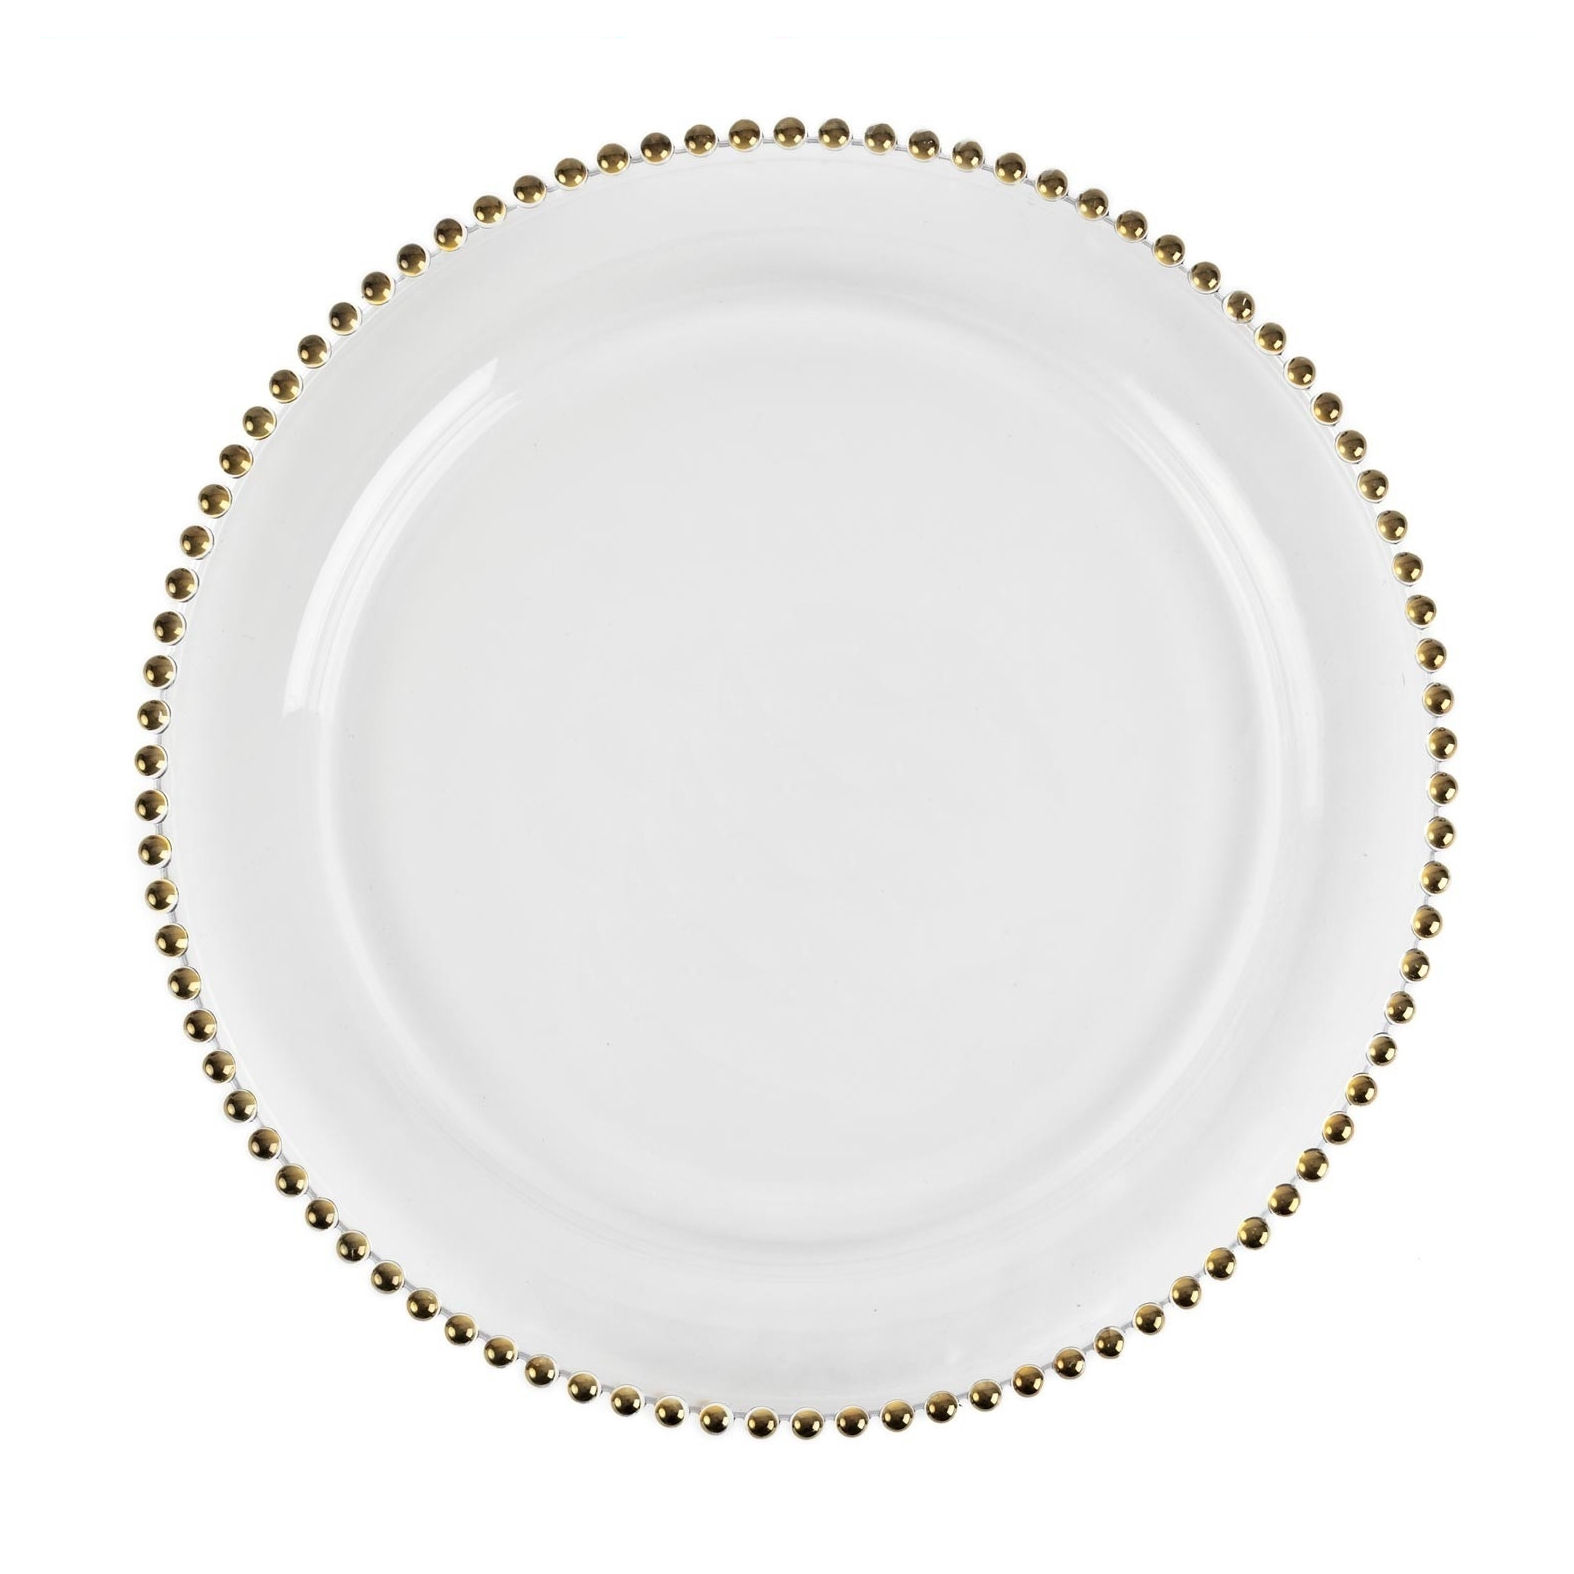 Clear Glass Dinner Plates Wholesale